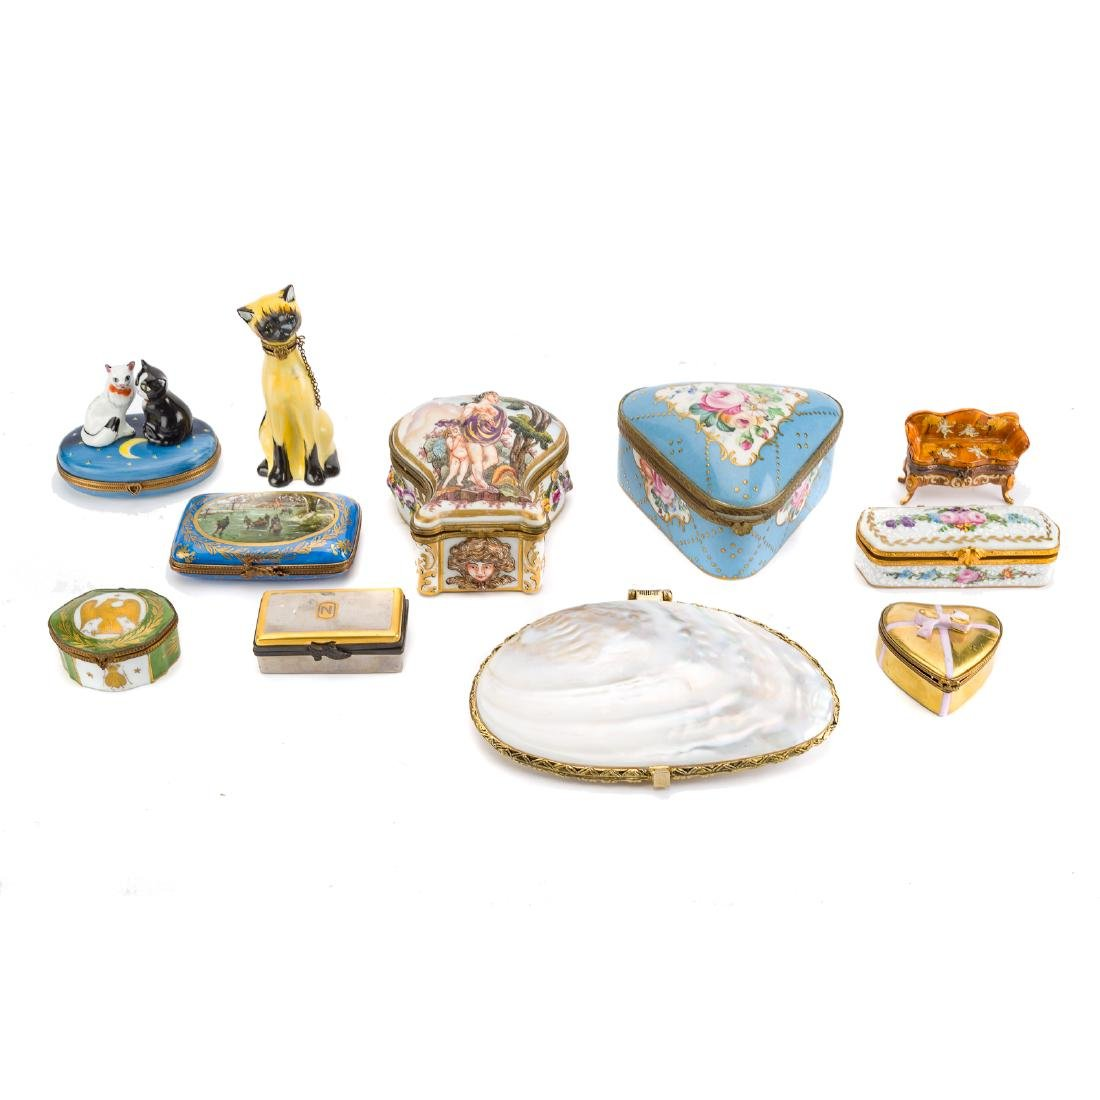 10 porcelain boxes and a shell box